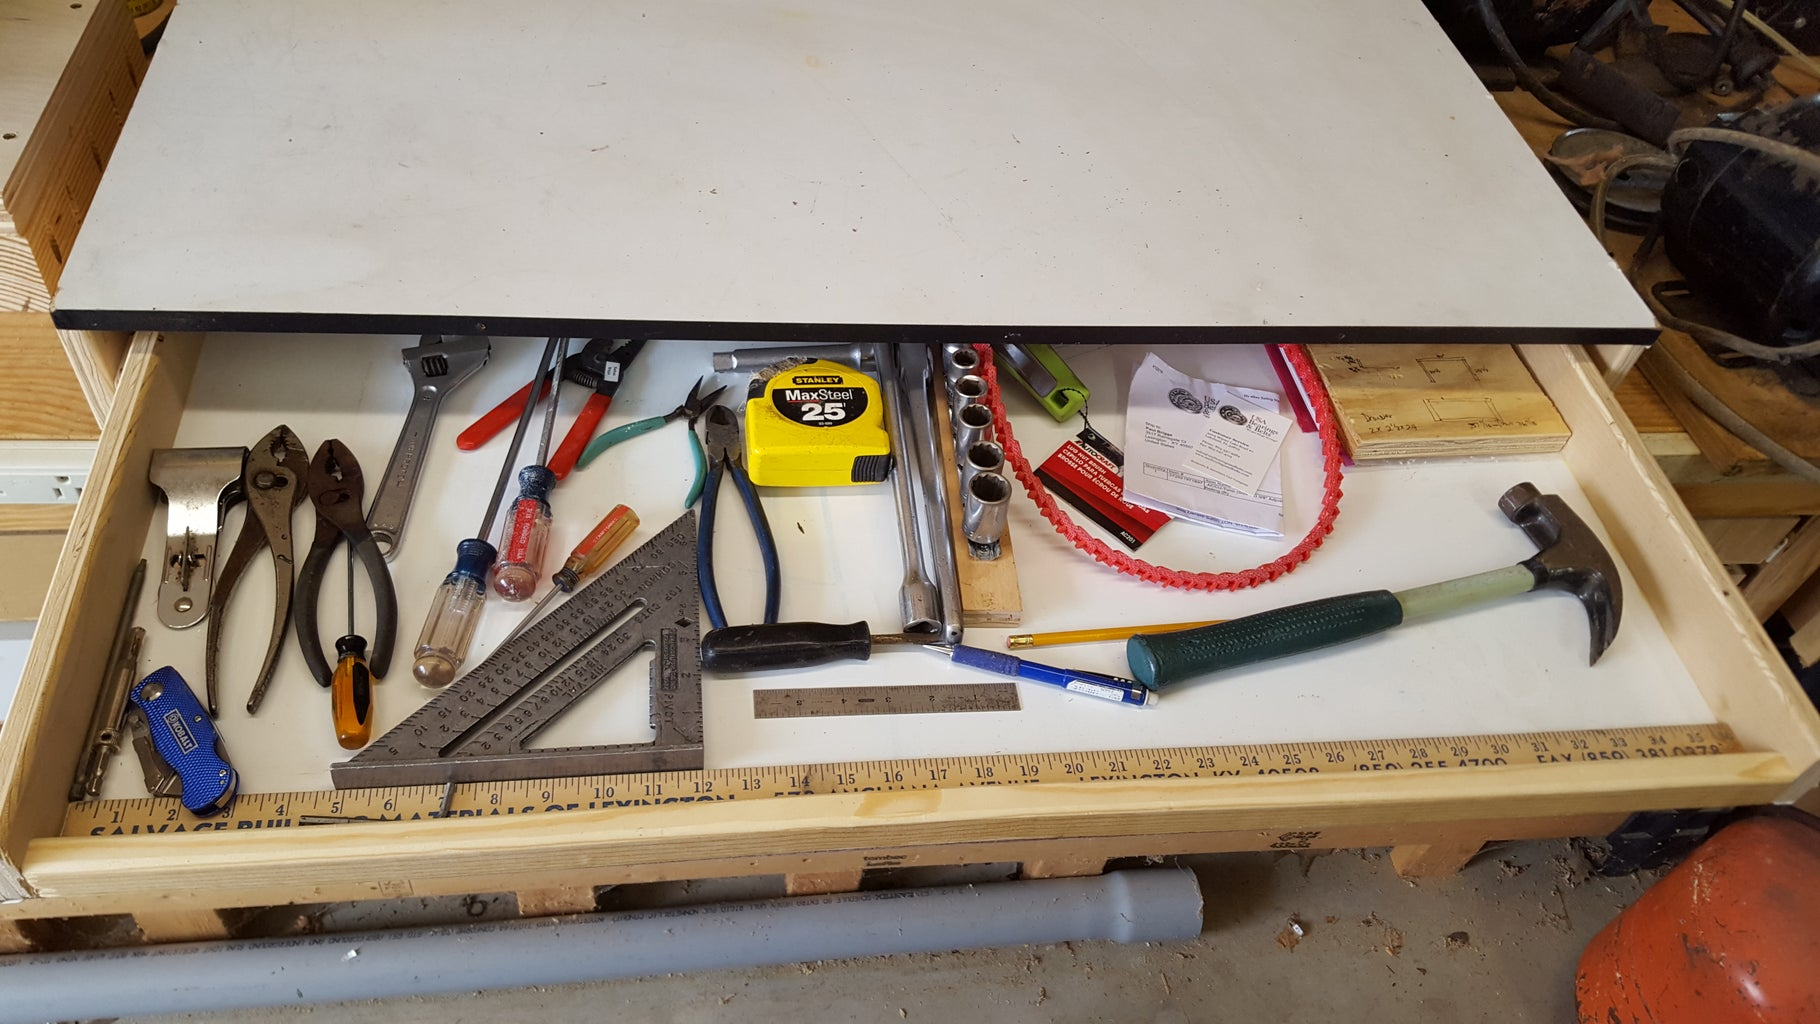 Install Drawer & Put in Service